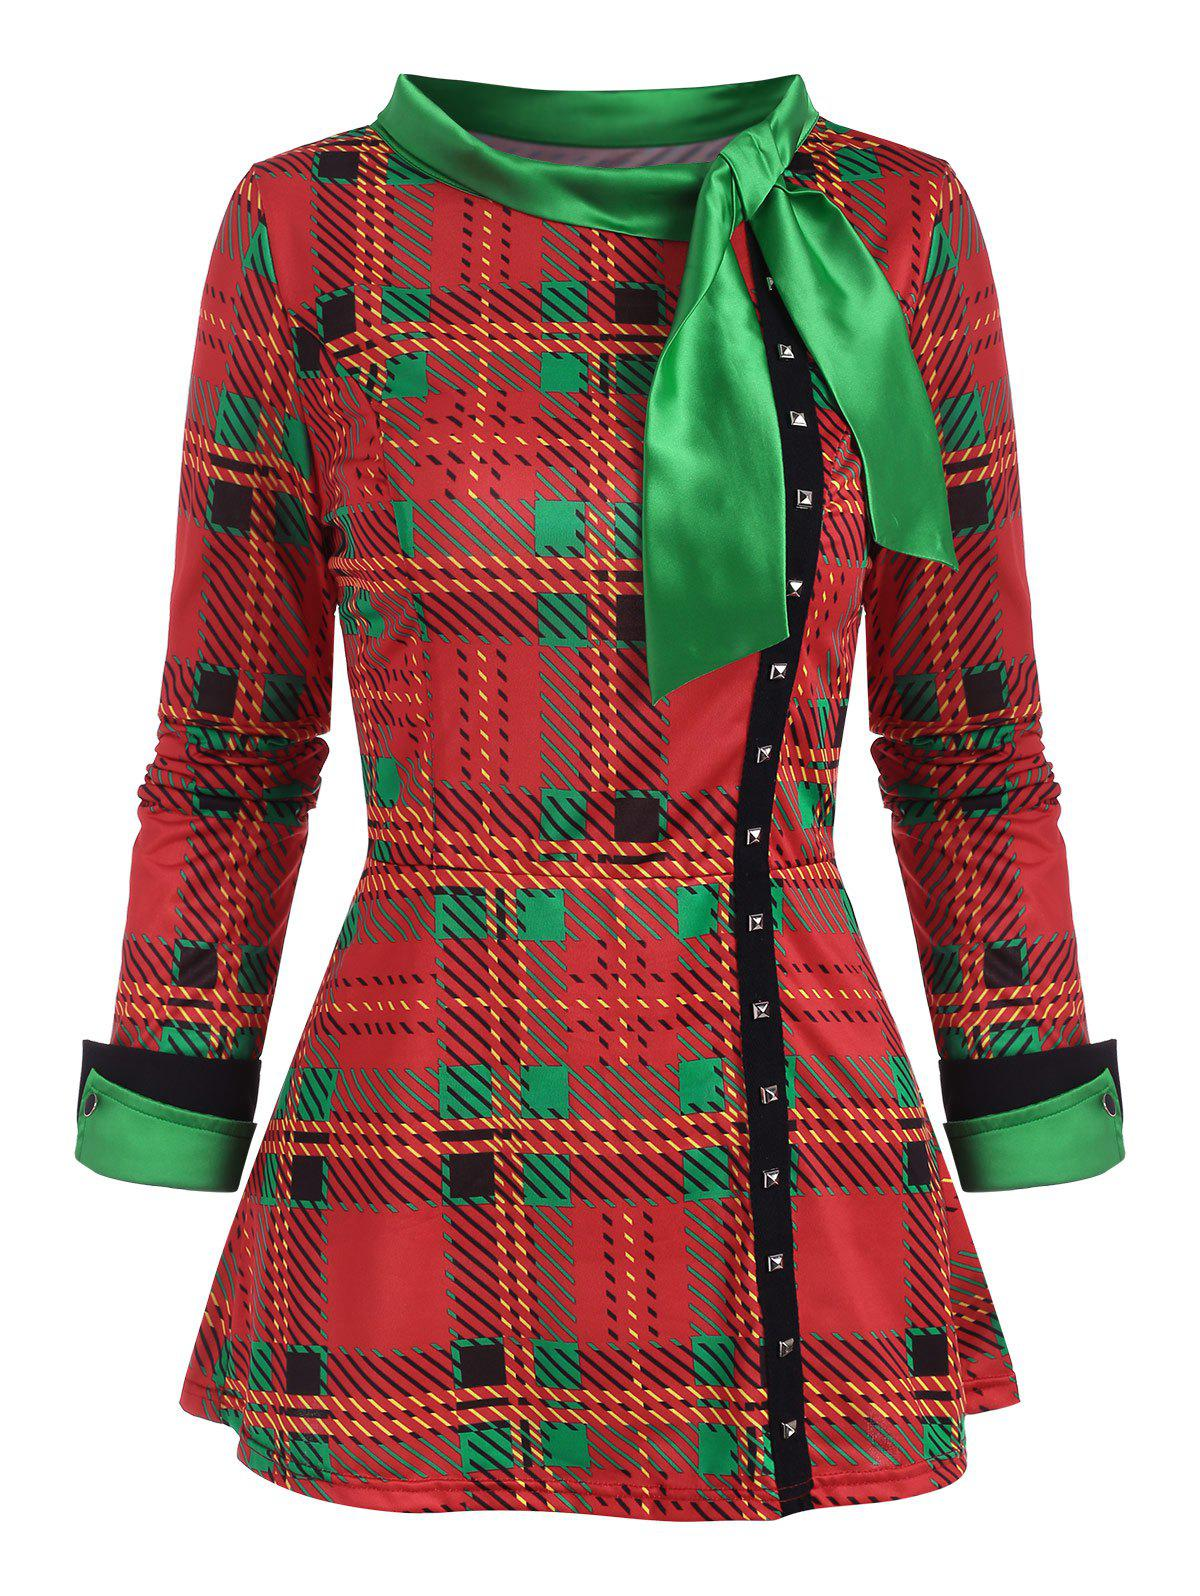 Christmas Plaid Pussy Bow Rivet Slit Cuff Top - RED XXXL